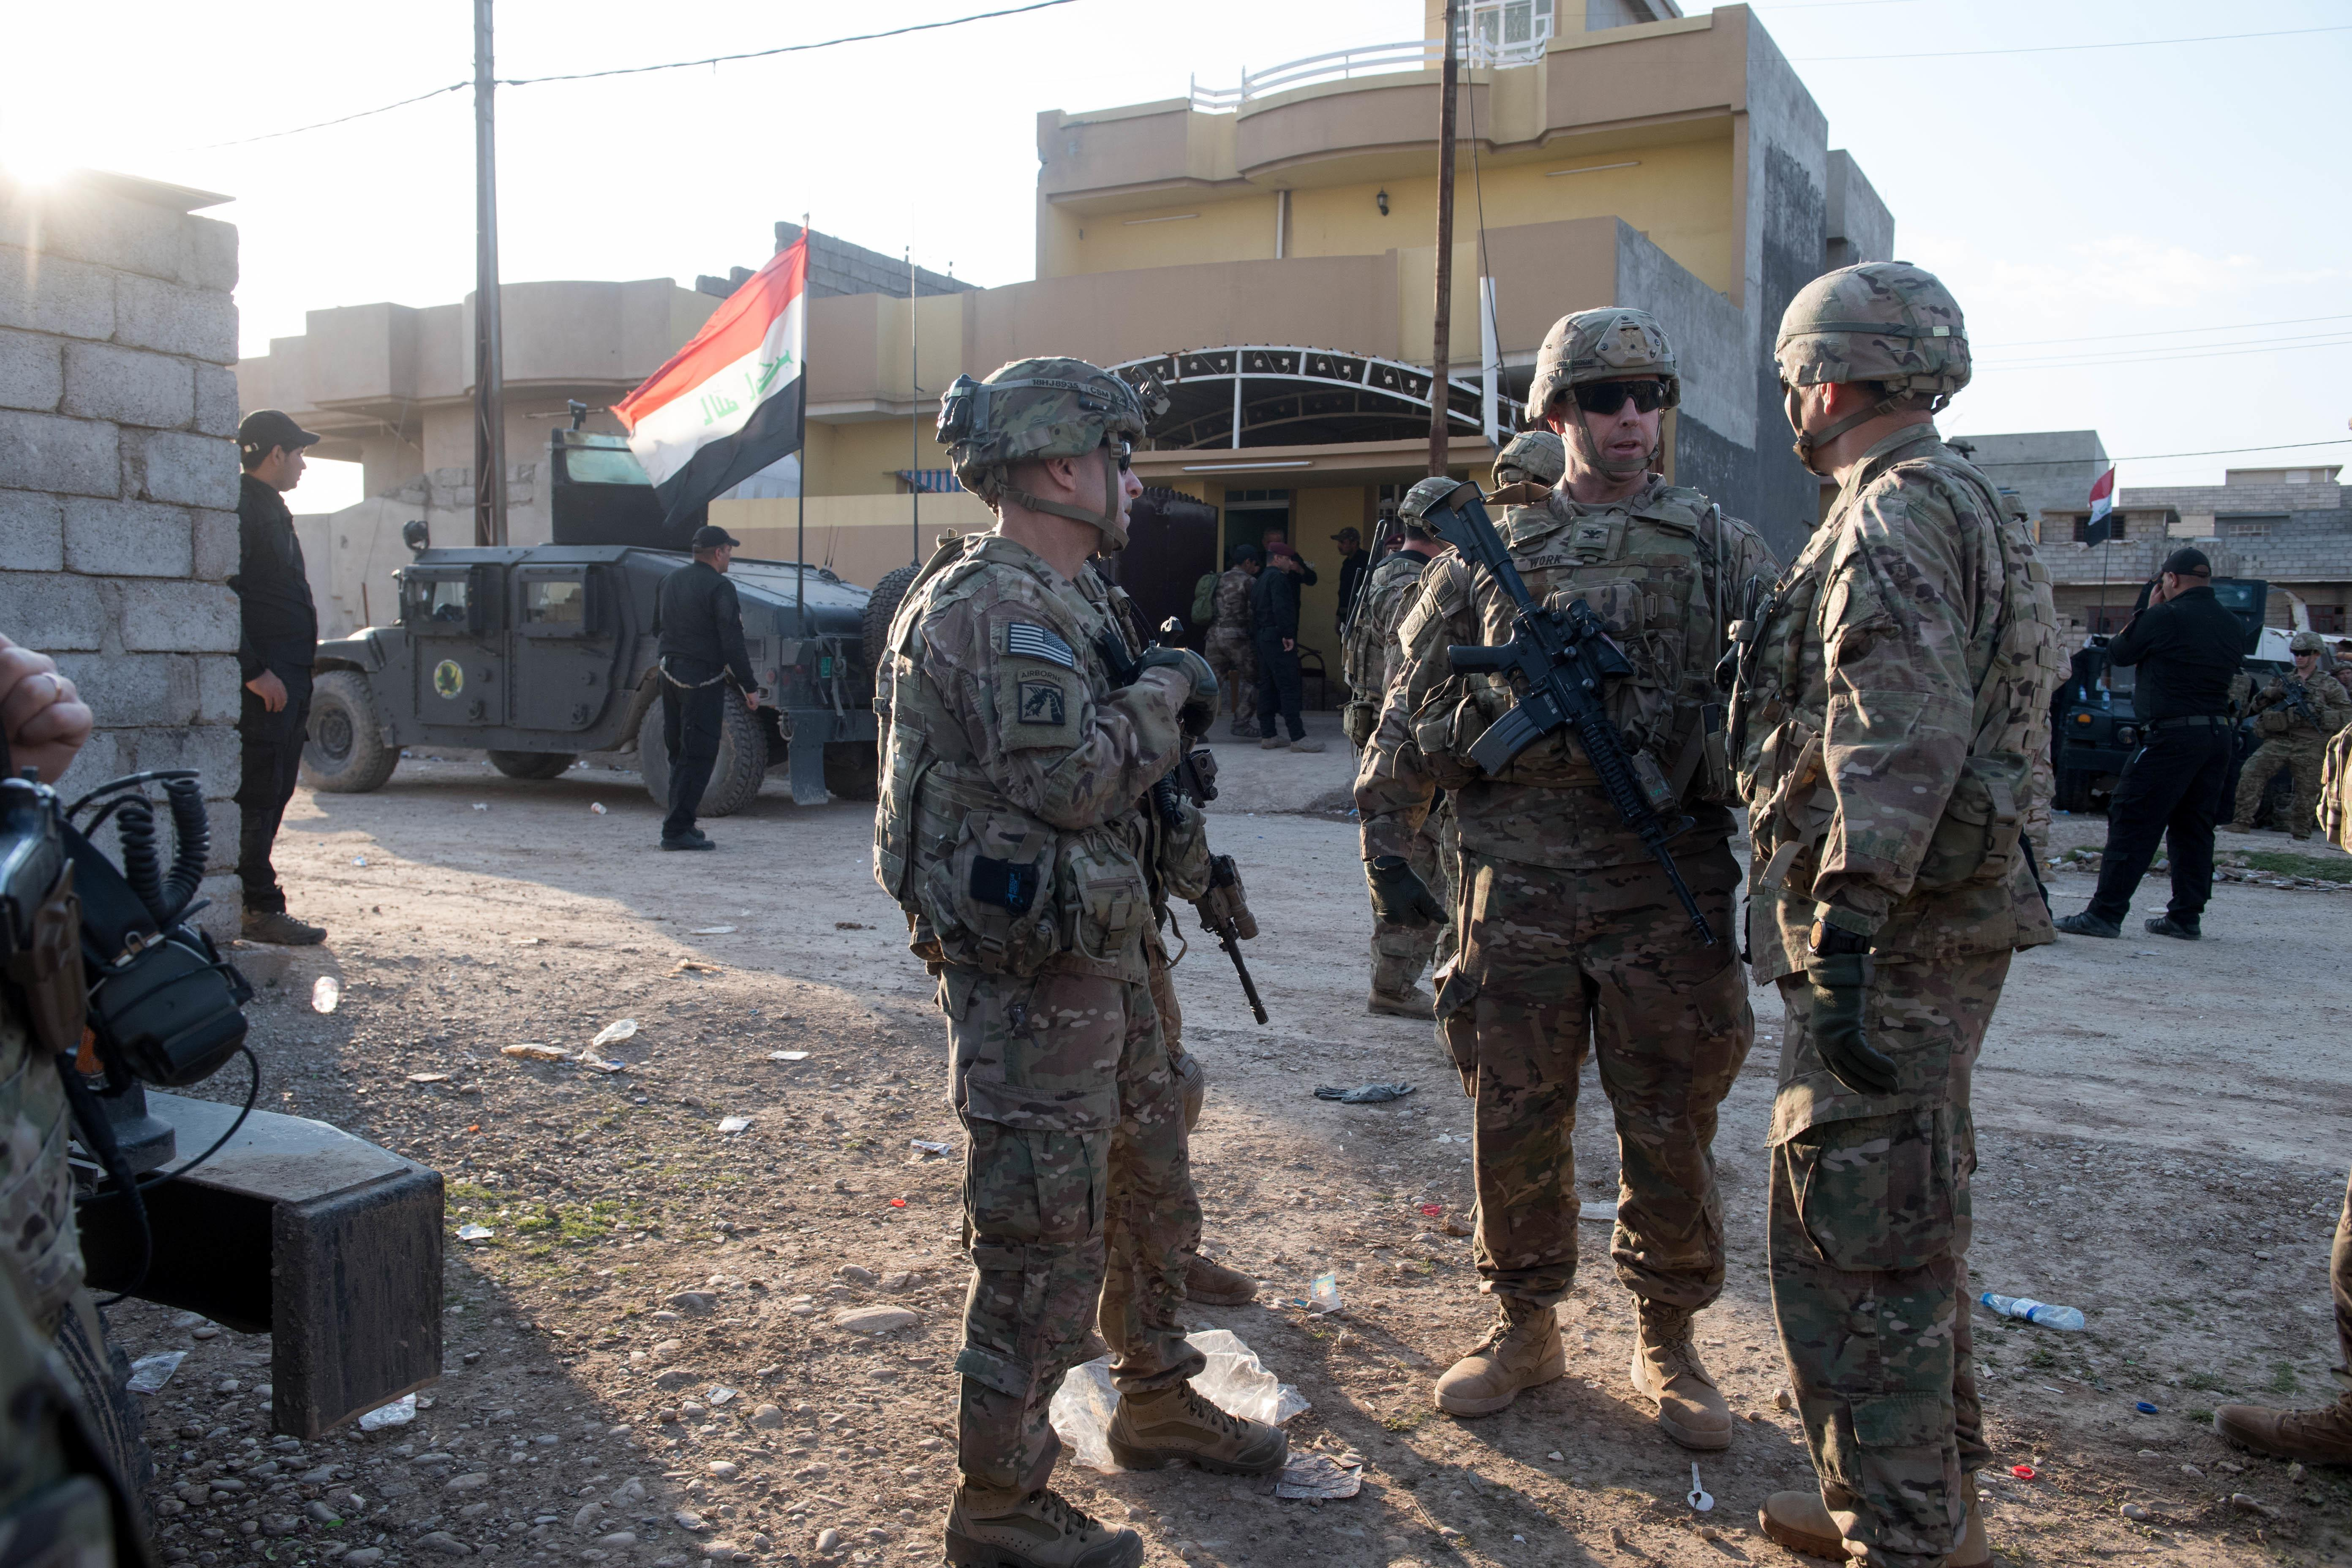 Lt  Gen  Townsend visits soldiers in Mosul